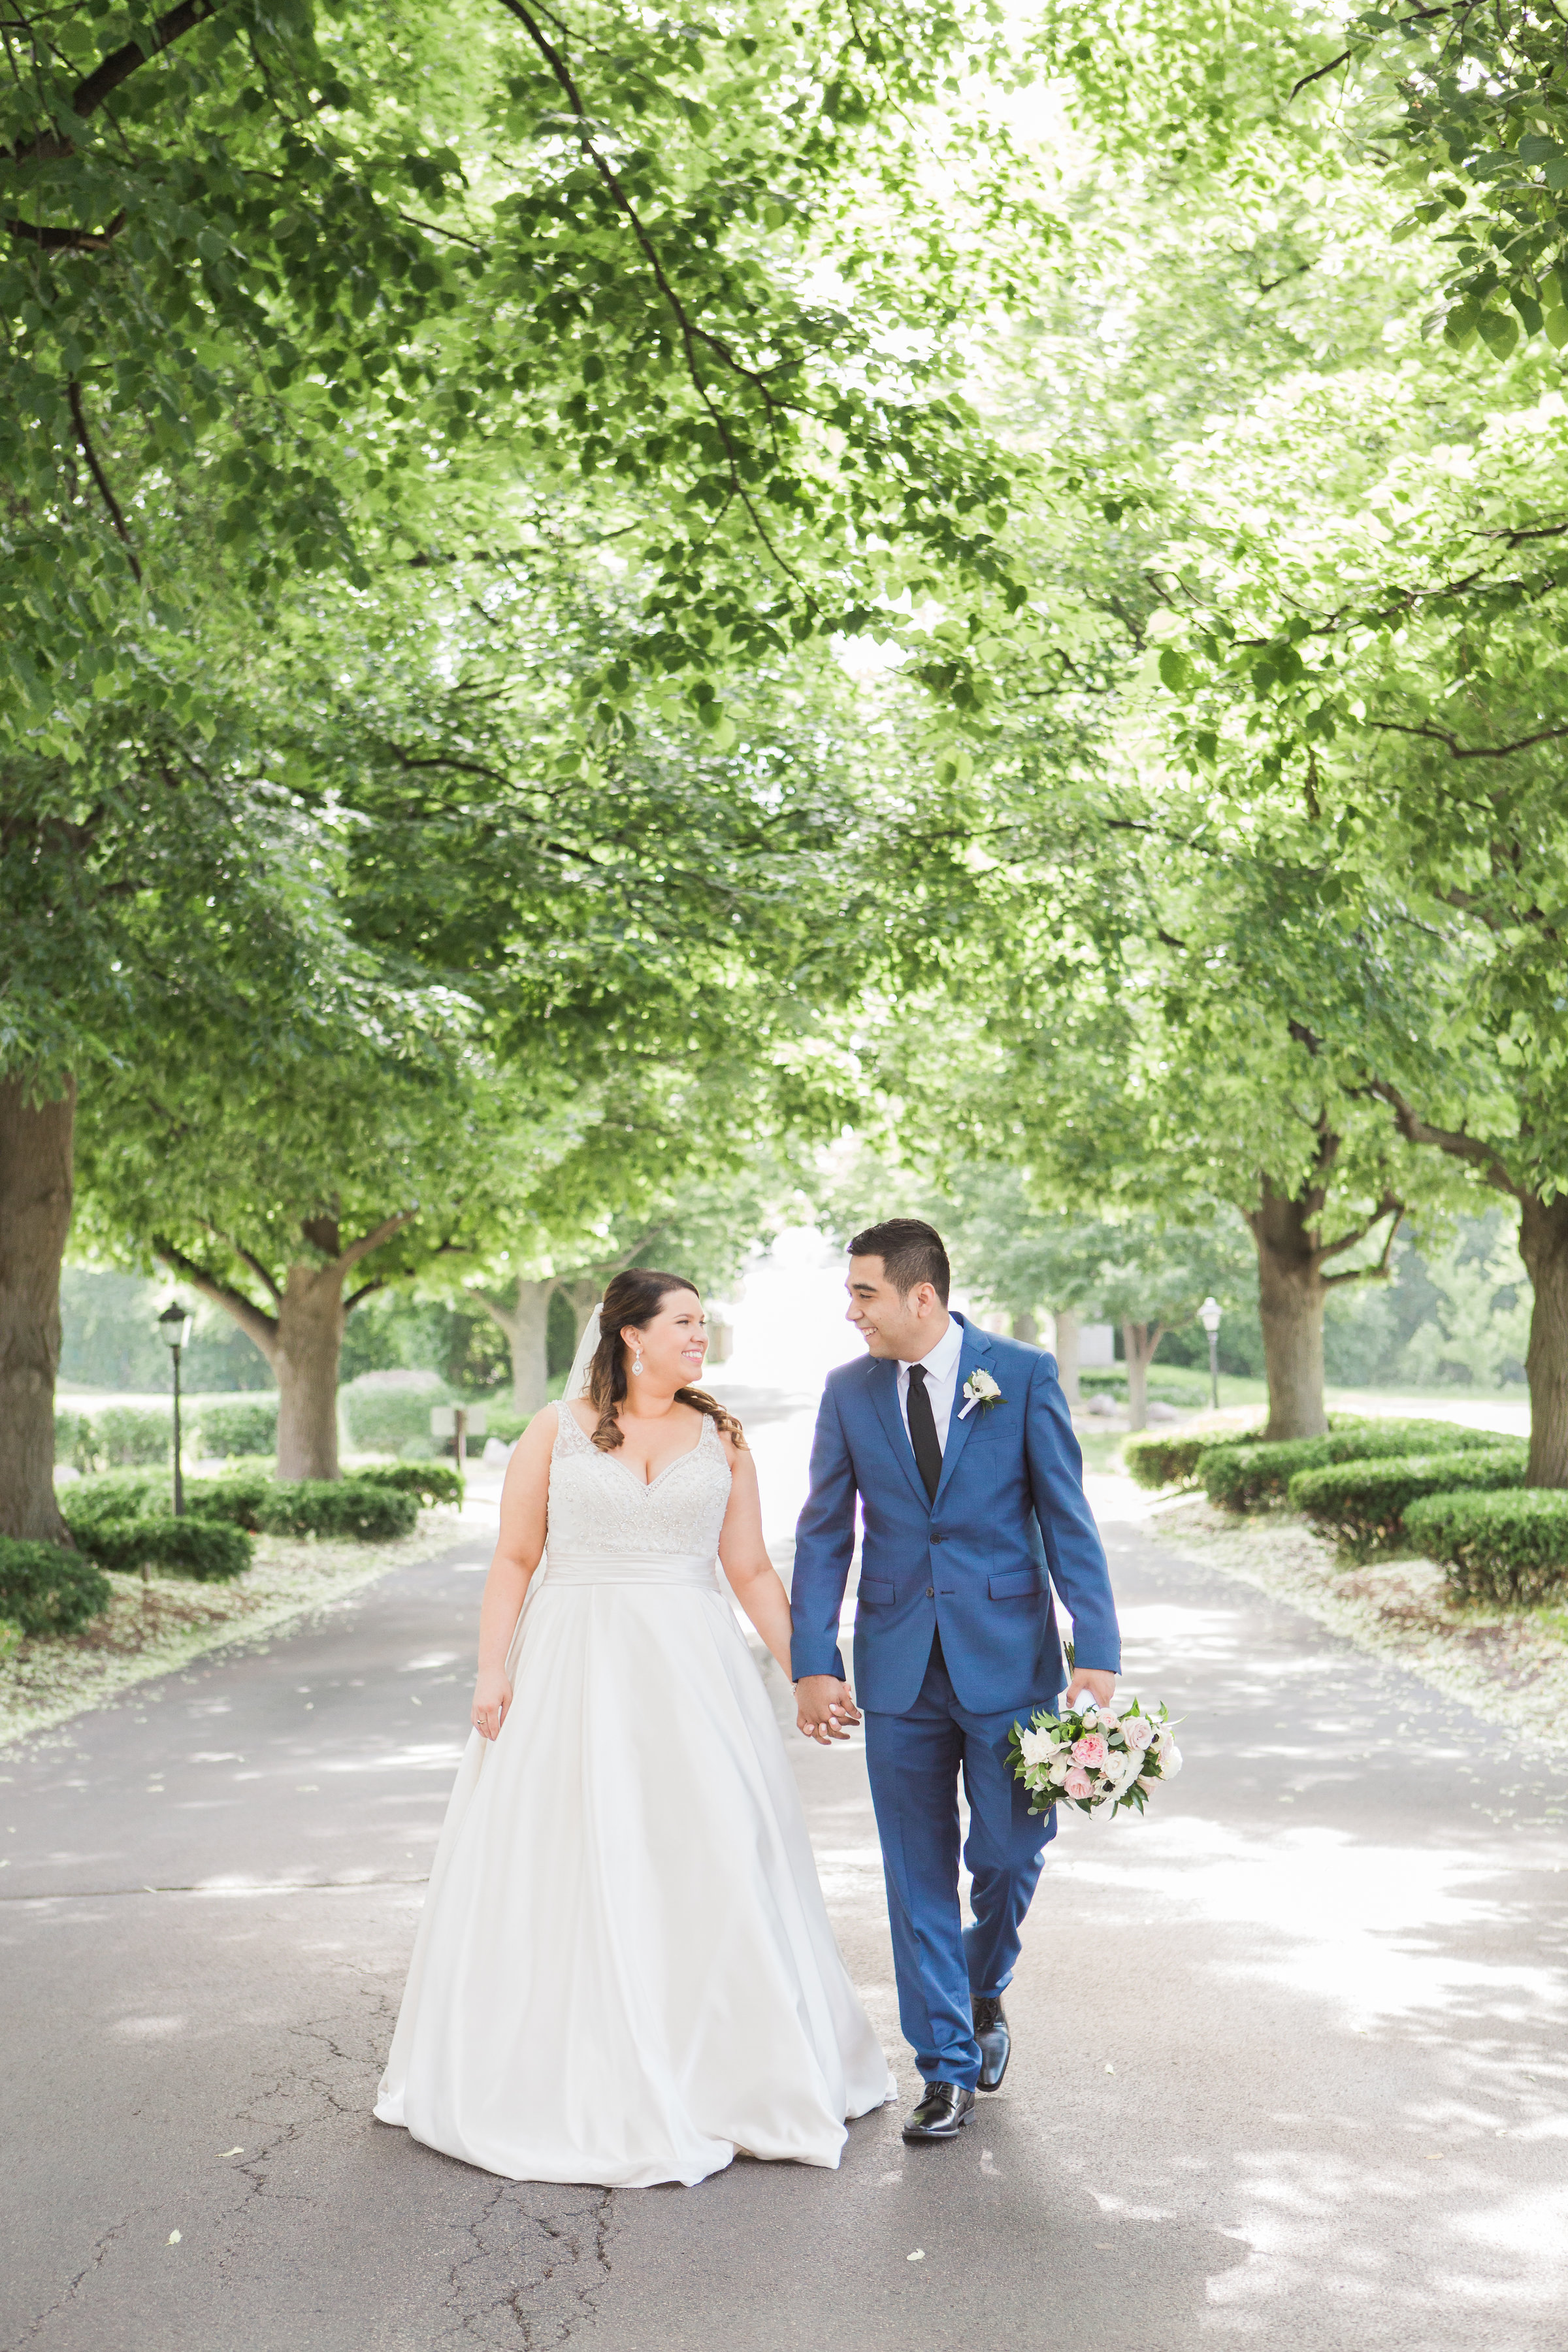 Tips for Posing for Wedding Photos Photography by Lauryn (3)